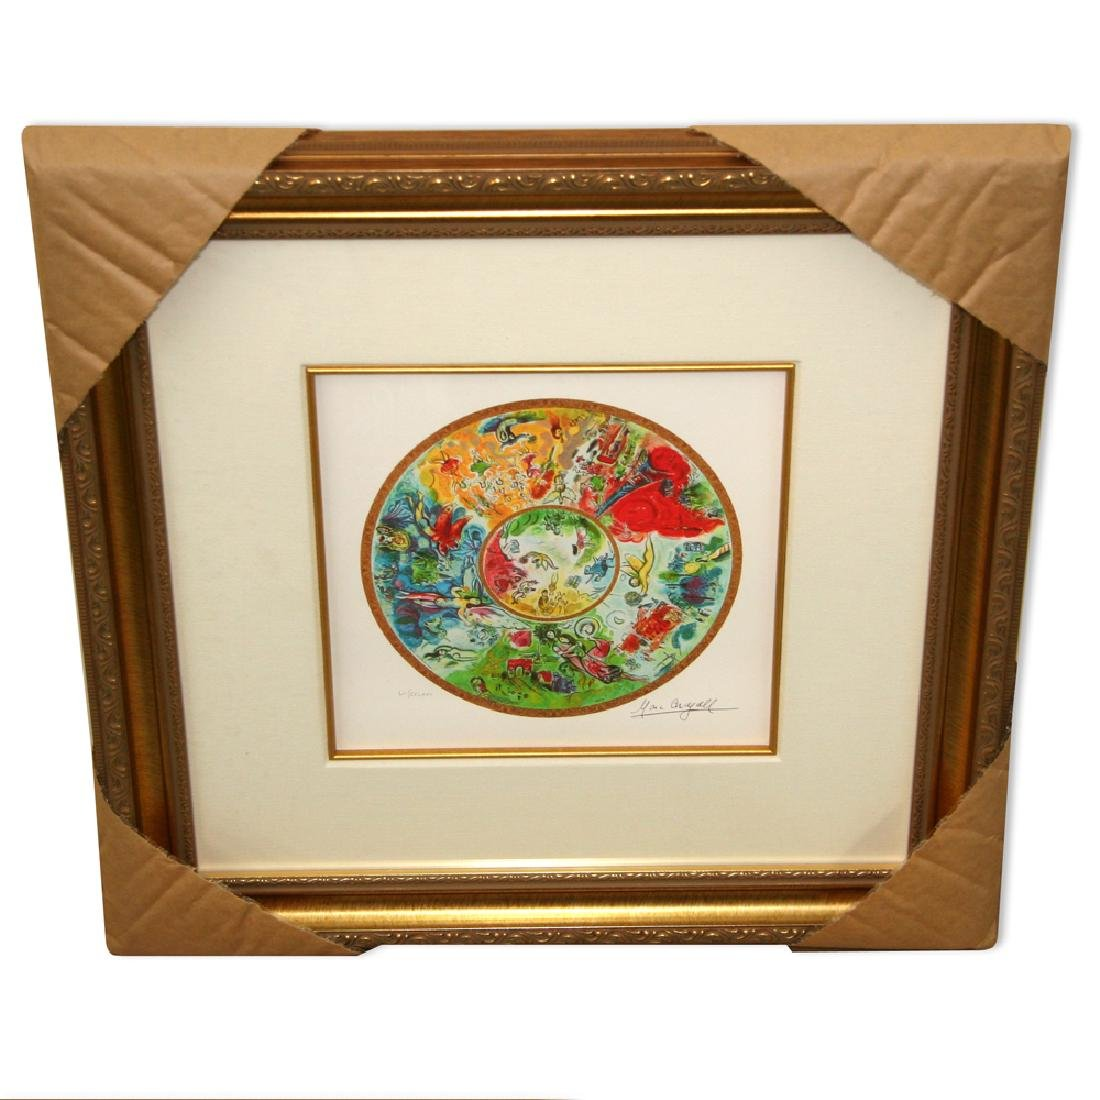 Chagall (After) 'Paris Opera Ceiling' Framed Giclee-Ltd